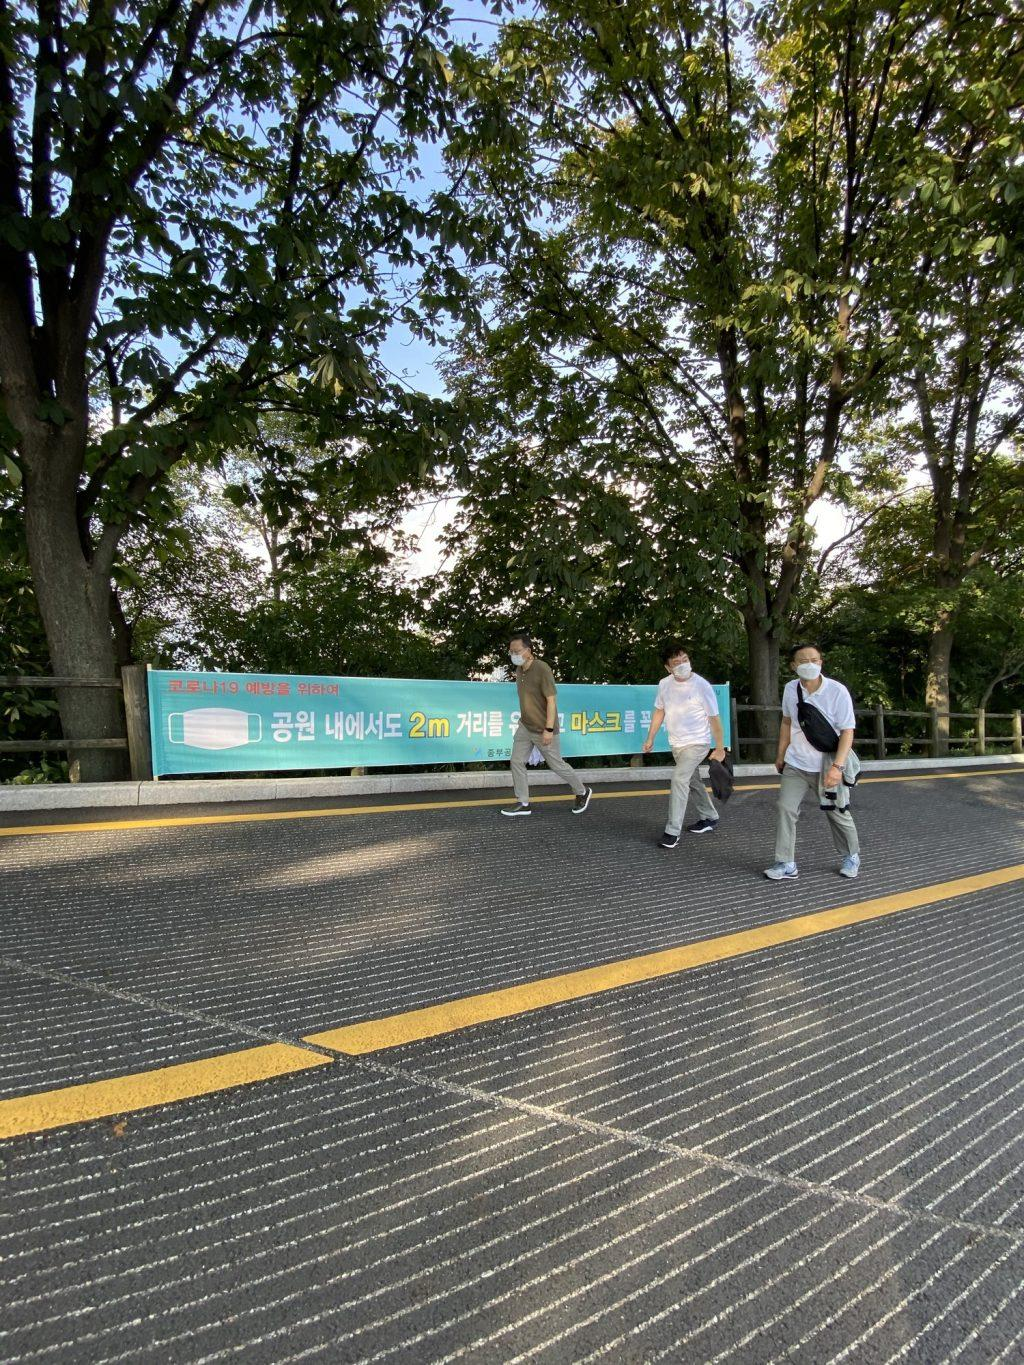 Three men wear masks while walking in front of a banner that reminds the public of the COVID-19 precautions. Similar forms of this banner were placed along both sides of the road with occasional hand sanitizers on small stools.